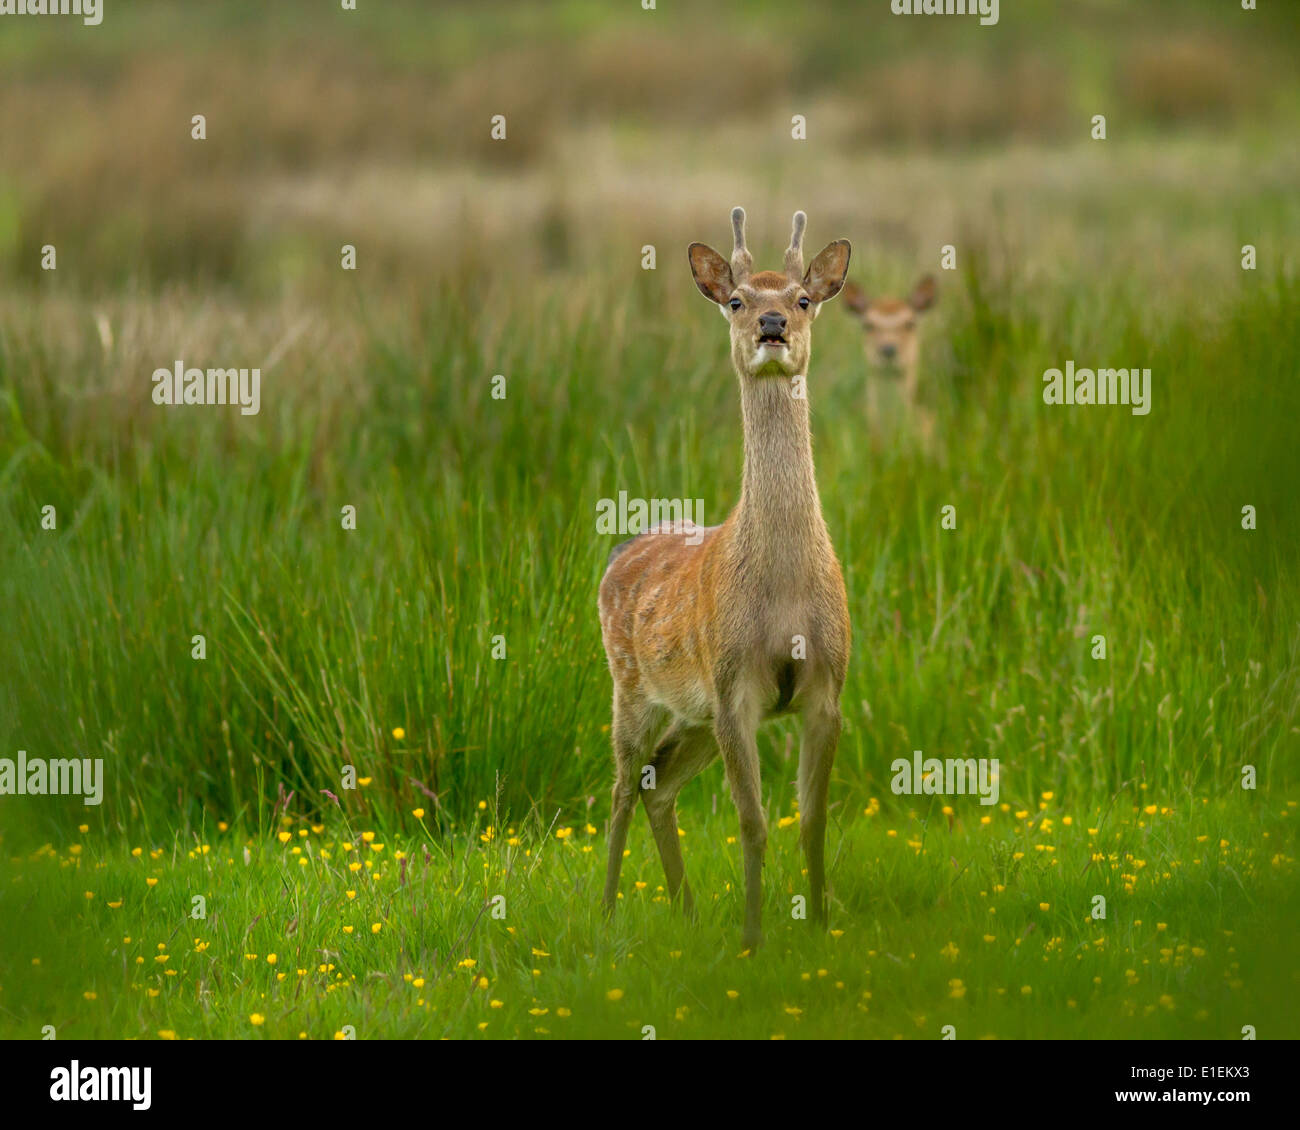 Sika deer with fawn, Arne, UK - Stock Image